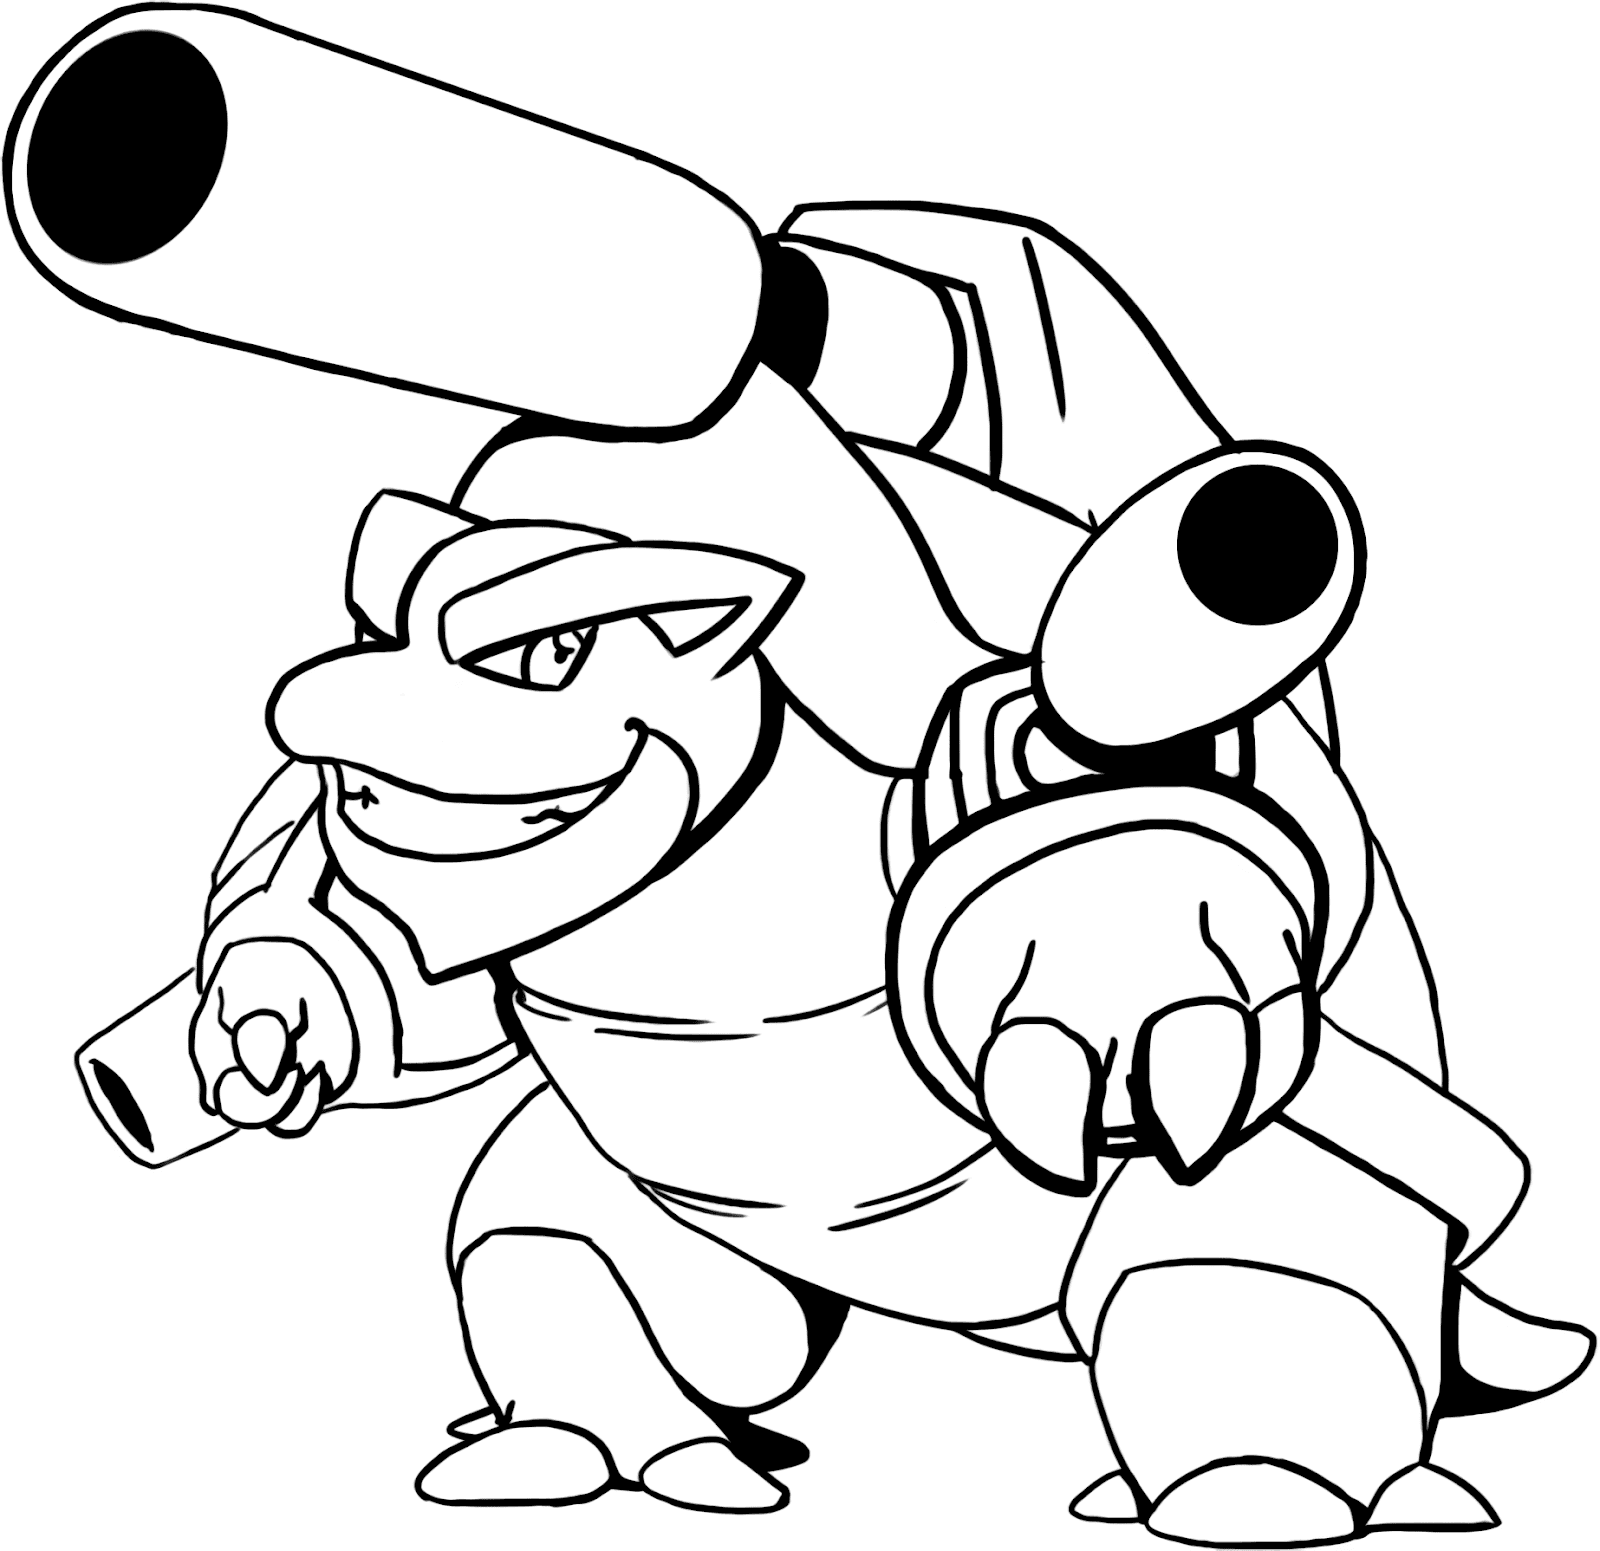 pokemon printable colouring pages free blastoise coloring pages collection free pokemon pokemon printable pages colouring